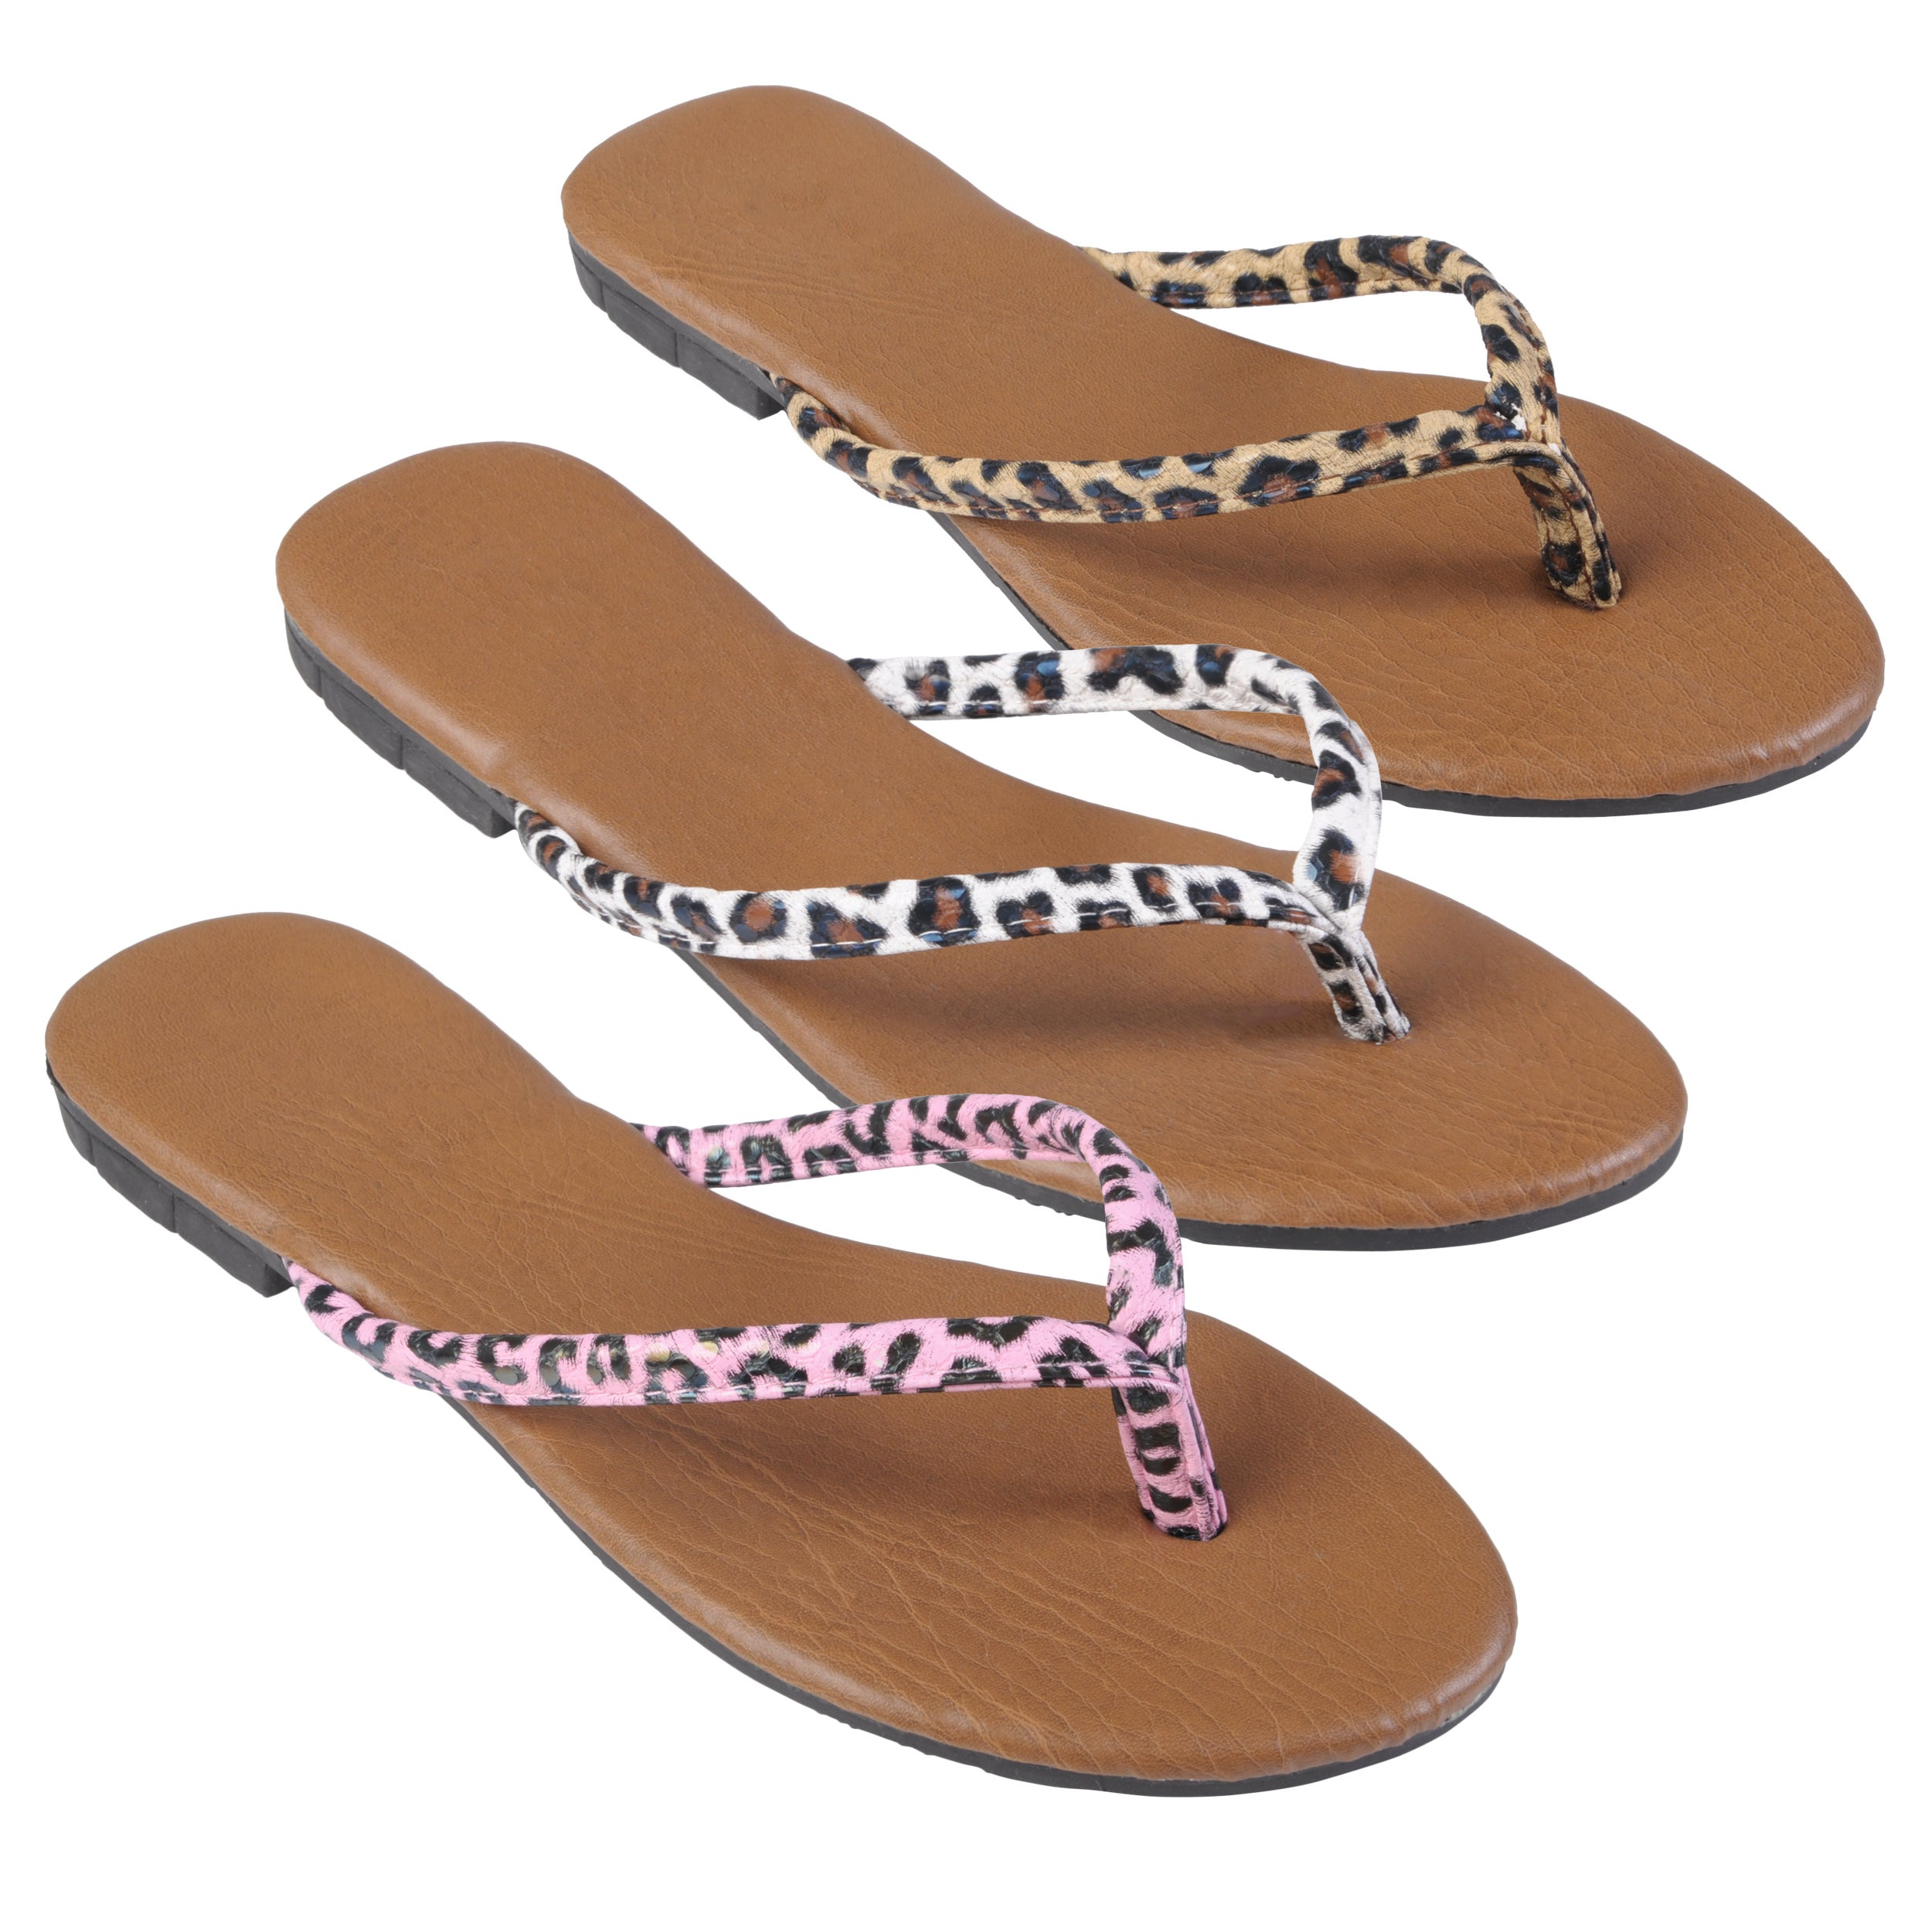 Journee Collection Women&#39;s &#39;Gavina&#39; Leopard Print Flip-flops